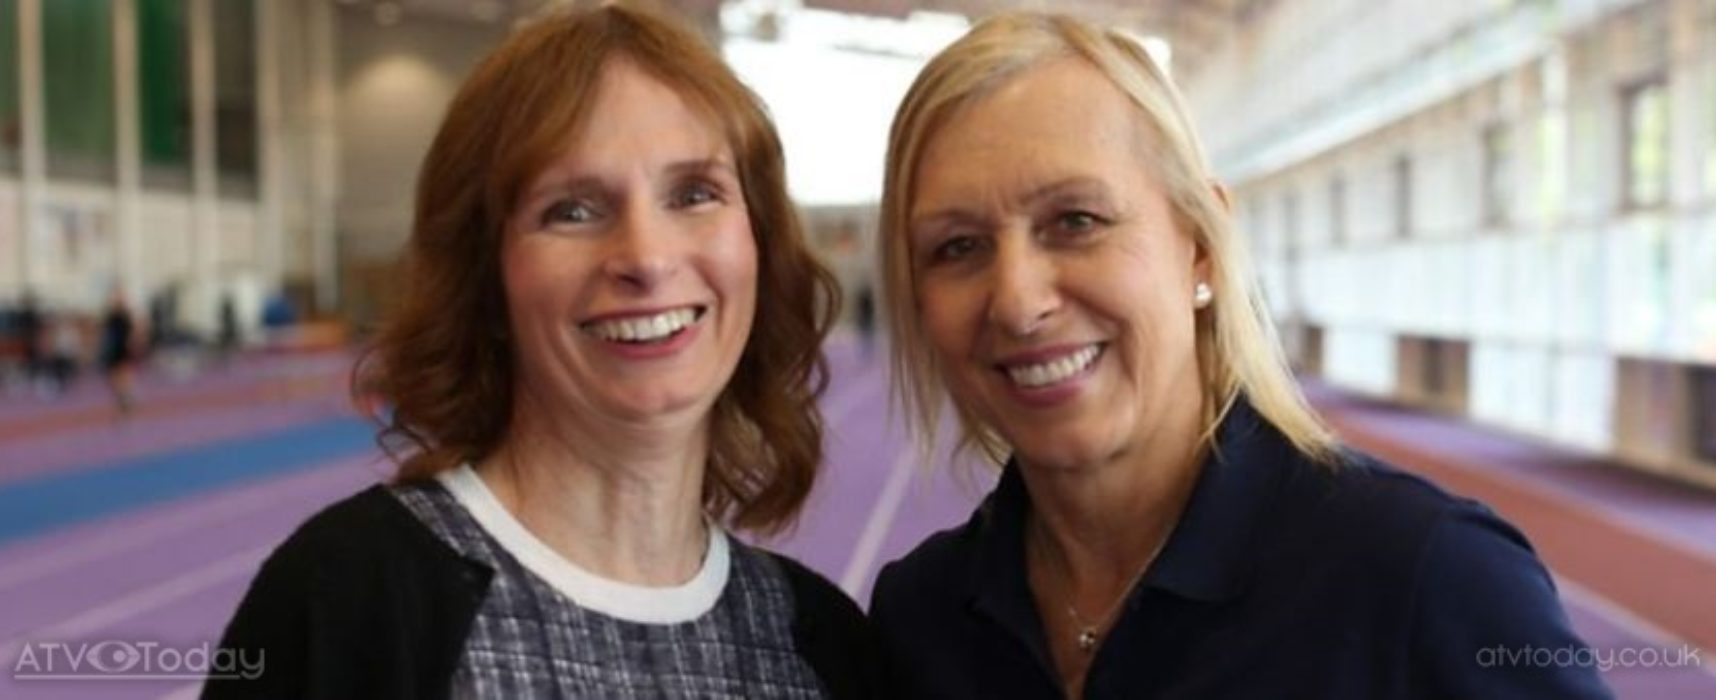 Martina Navratilova to front Trans Athletes: A Fair Playing Field? for the BBC